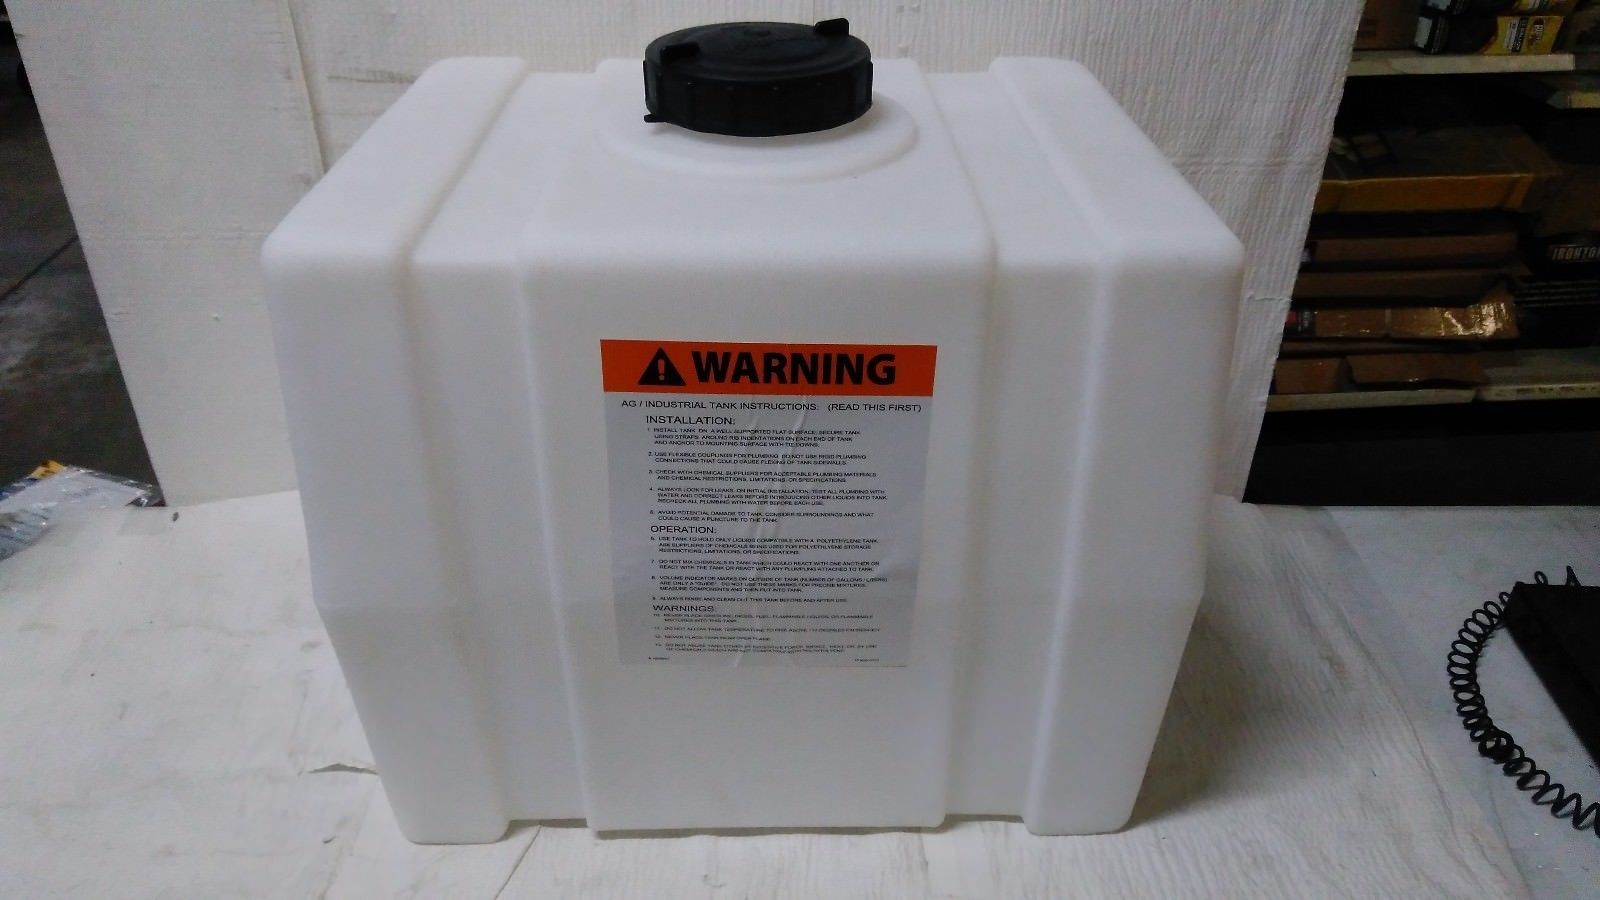 Water Pumps And Pressure Tanks 118851 Romotech Poly Storage Tank Square 30 Gallon Capacity Model 2390 Buy It Now O Storage Tank Pressure Tanks Storage